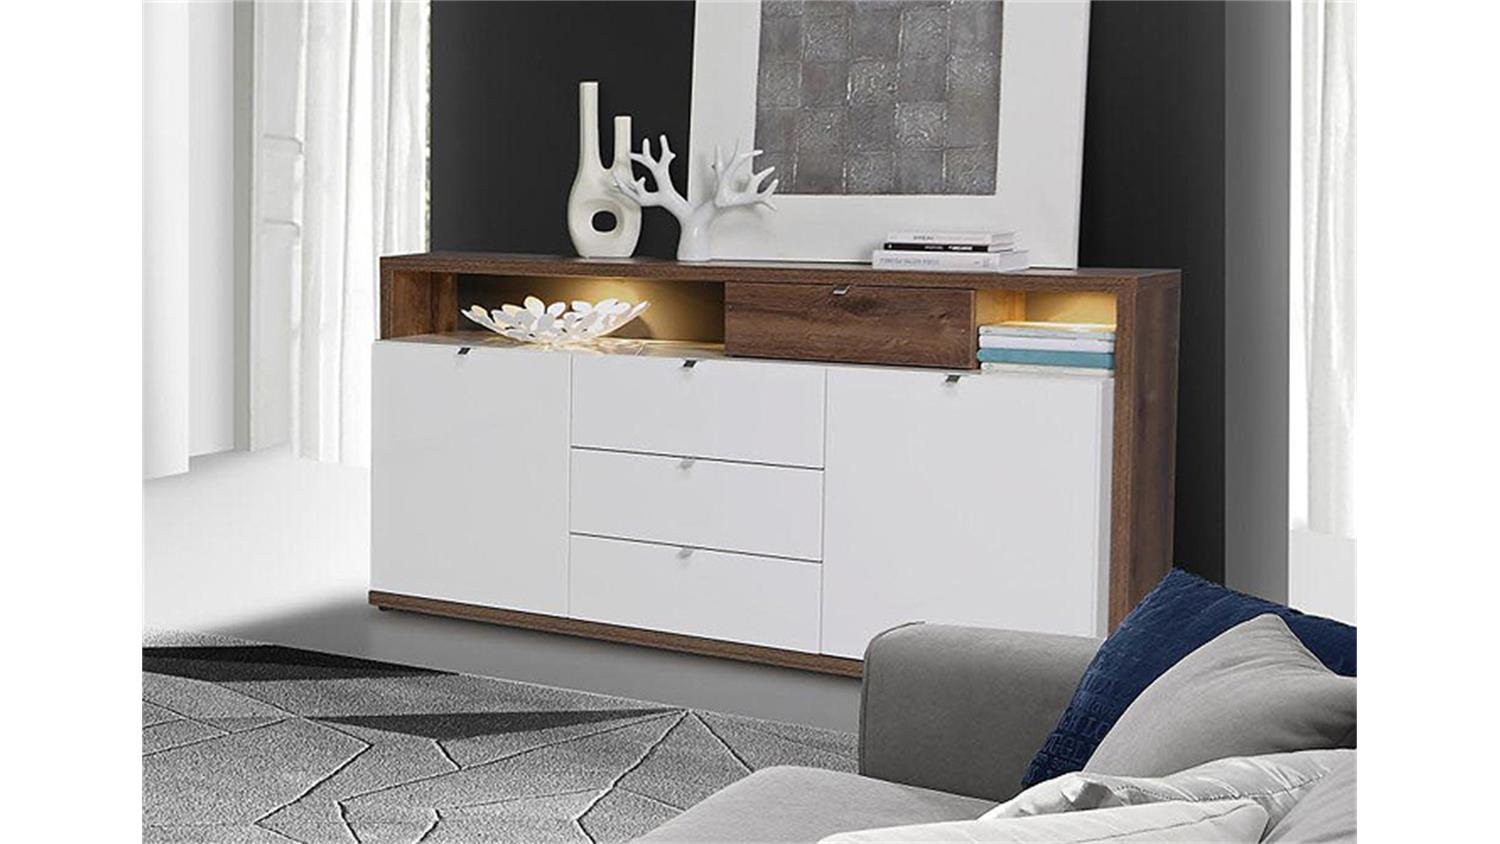 sideboard 1 alcano kommode wei hochglanz schlammeiche. Black Bedroom Furniture Sets. Home Design Ideas